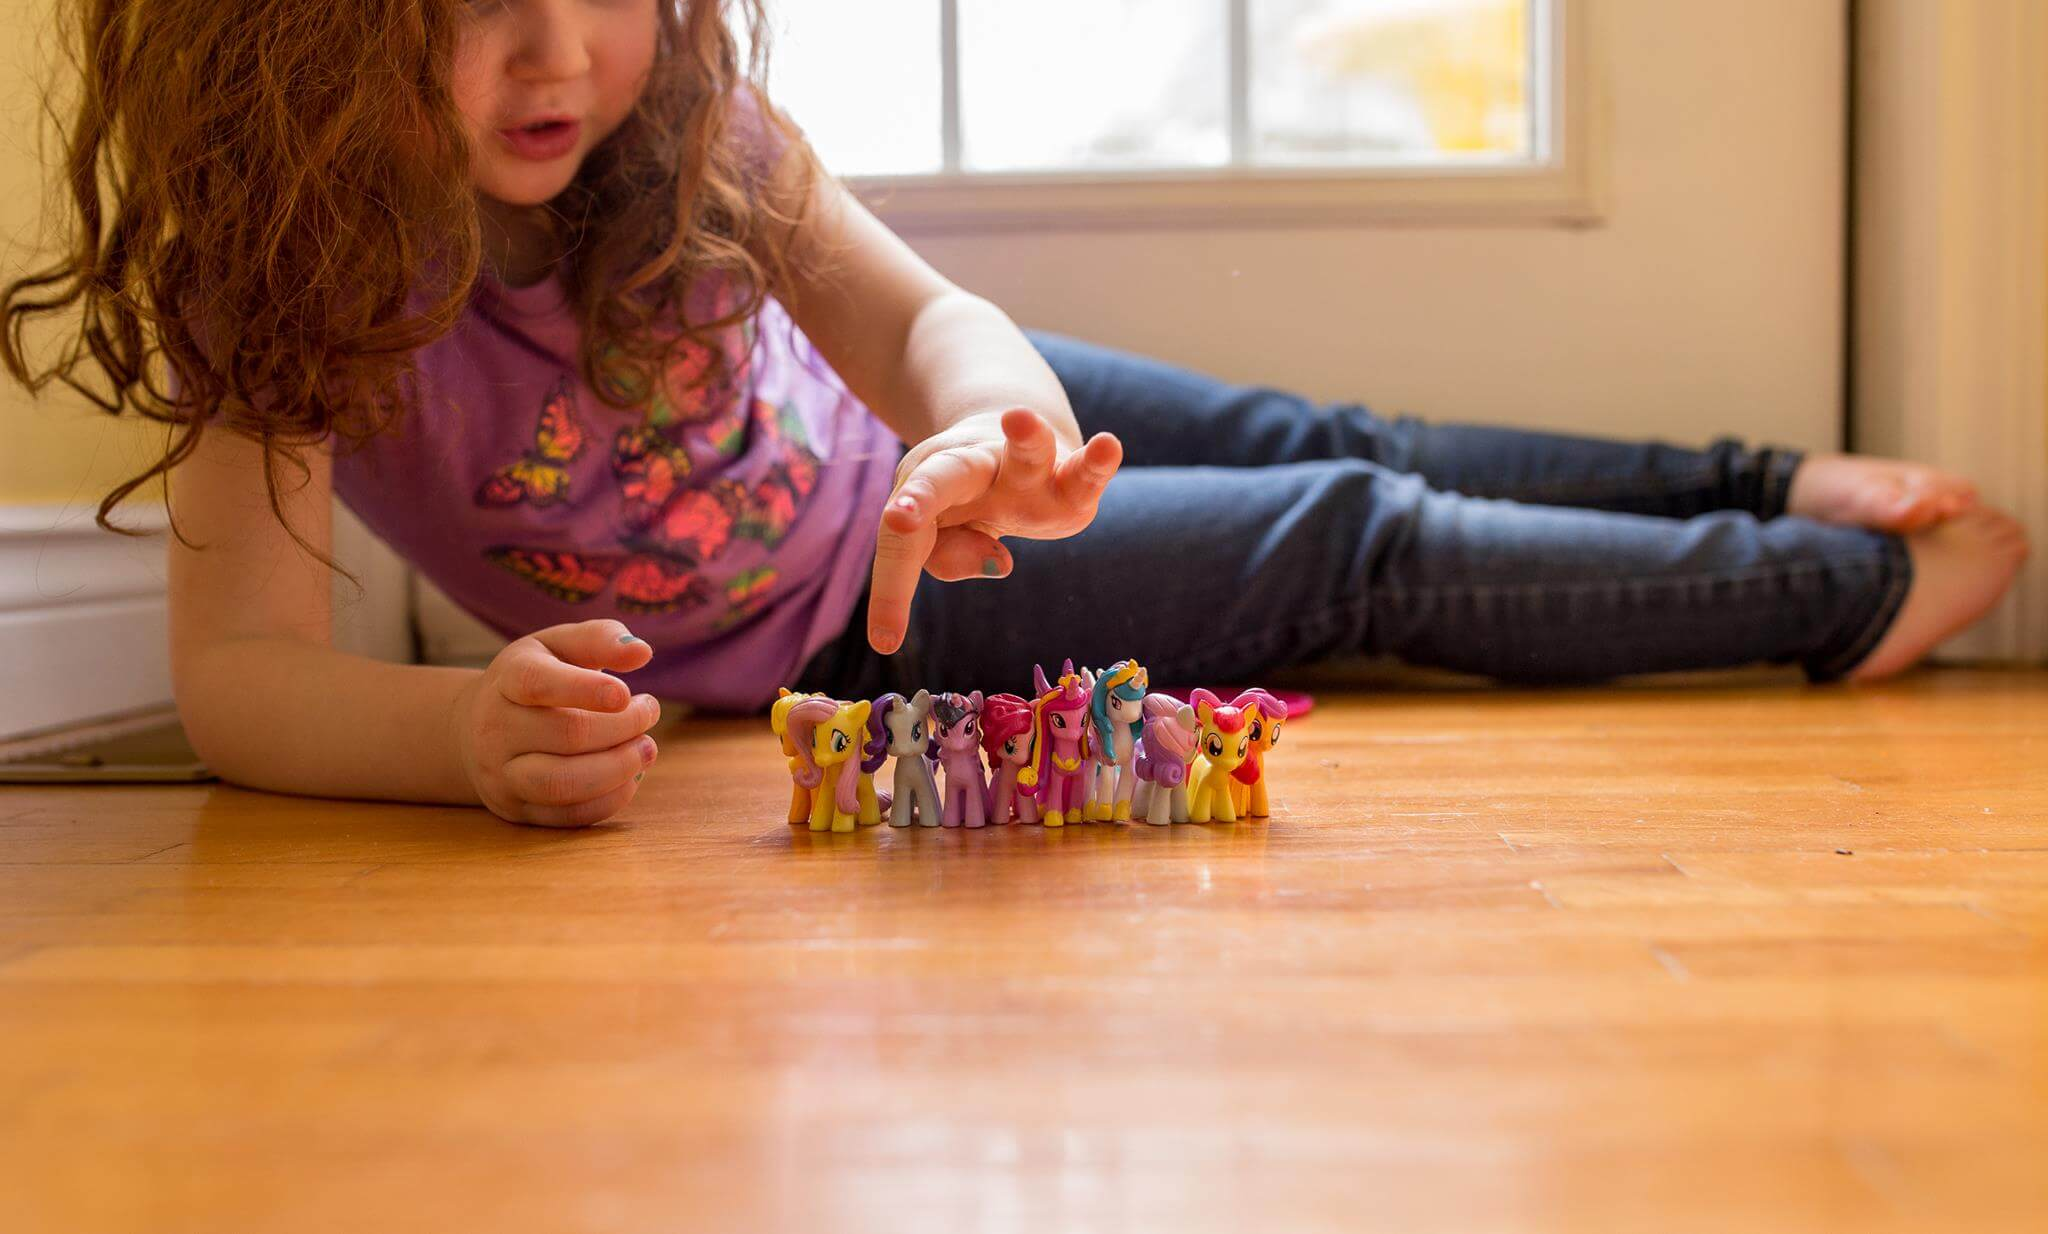 tips decluttering organizing kids toys parenting moncton consignment declutter organize playroom ideas kon mari